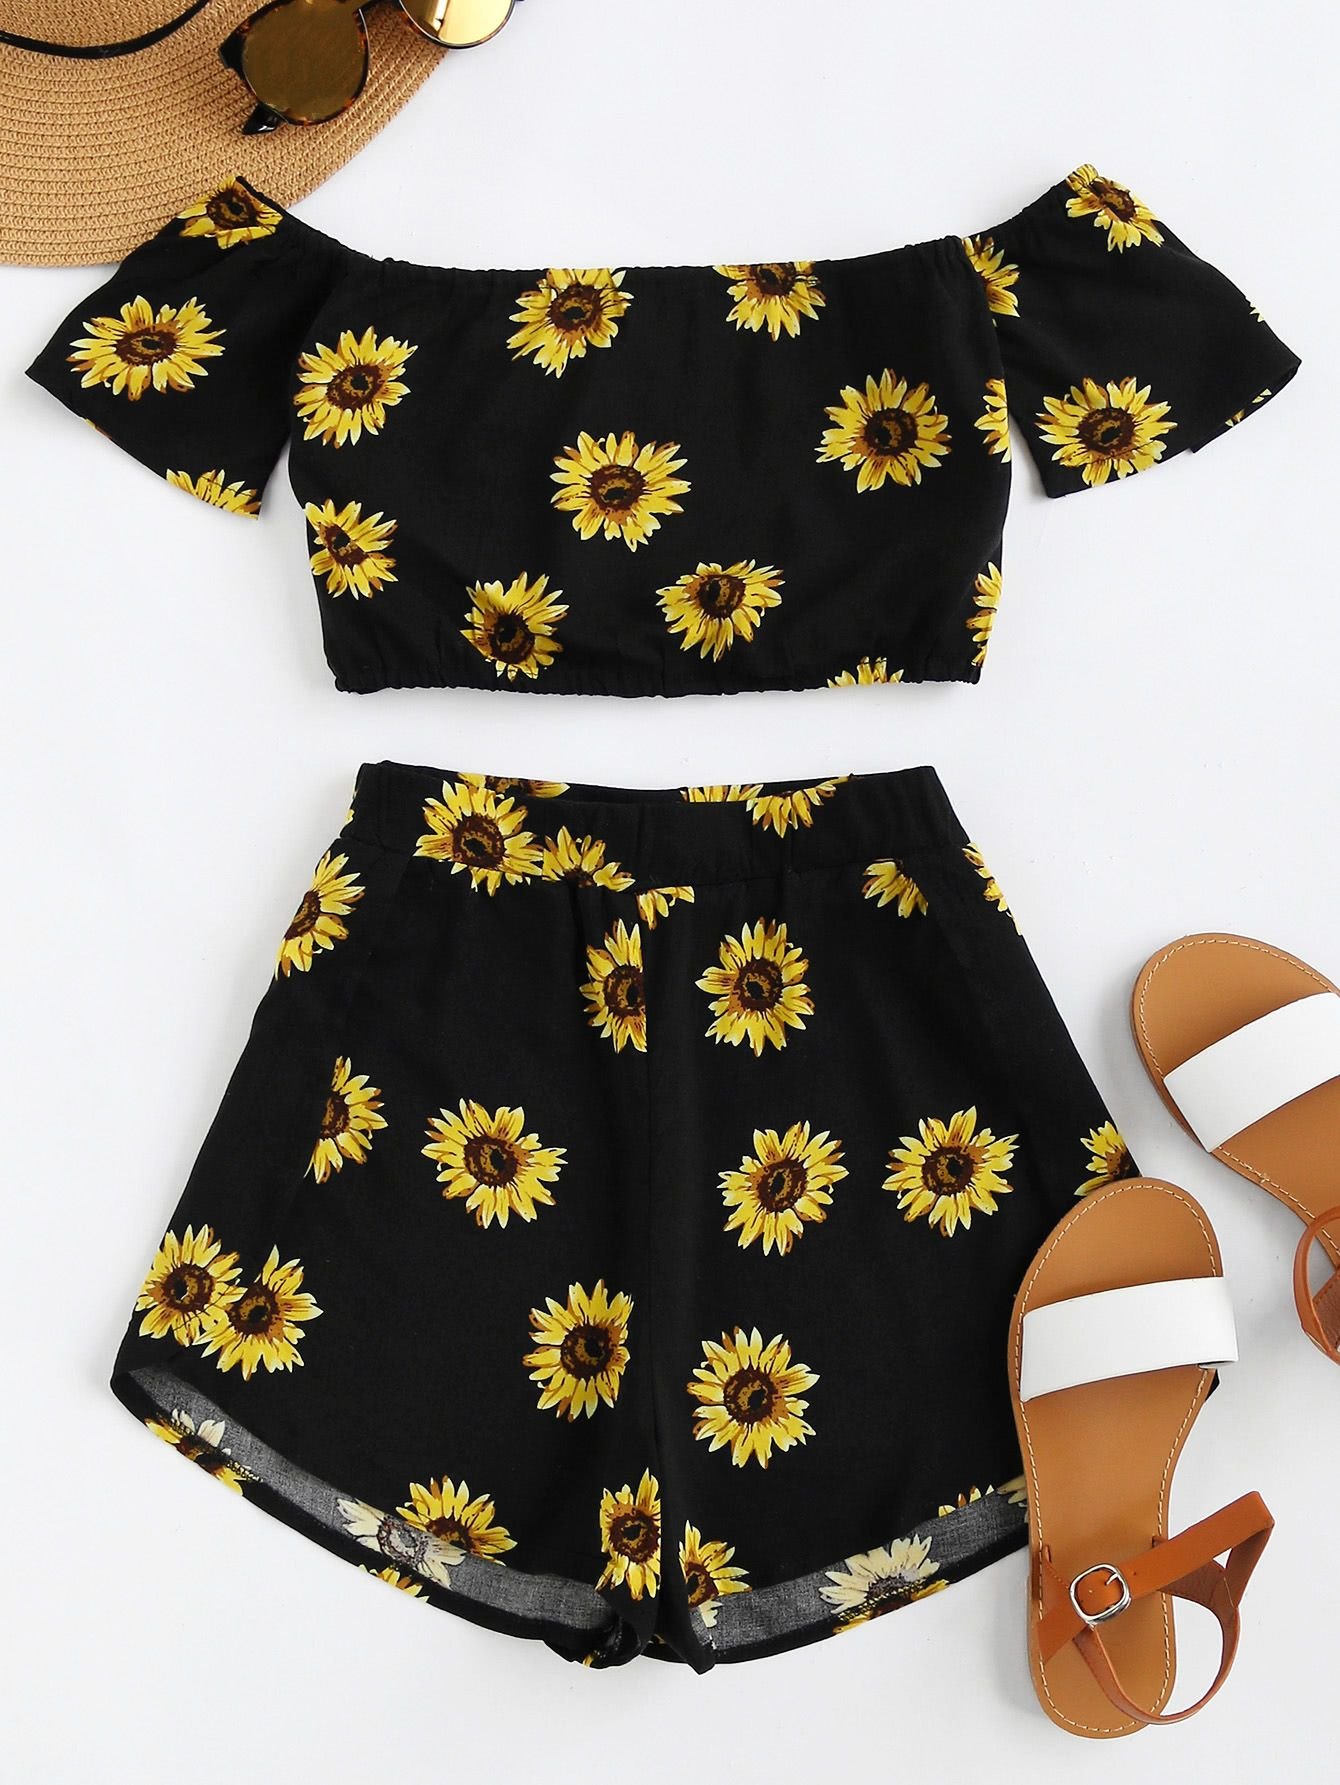 7253427c18bf Bardot Sunflower Print Crop Top And Shorts Set -SheIn(Sheinside ...